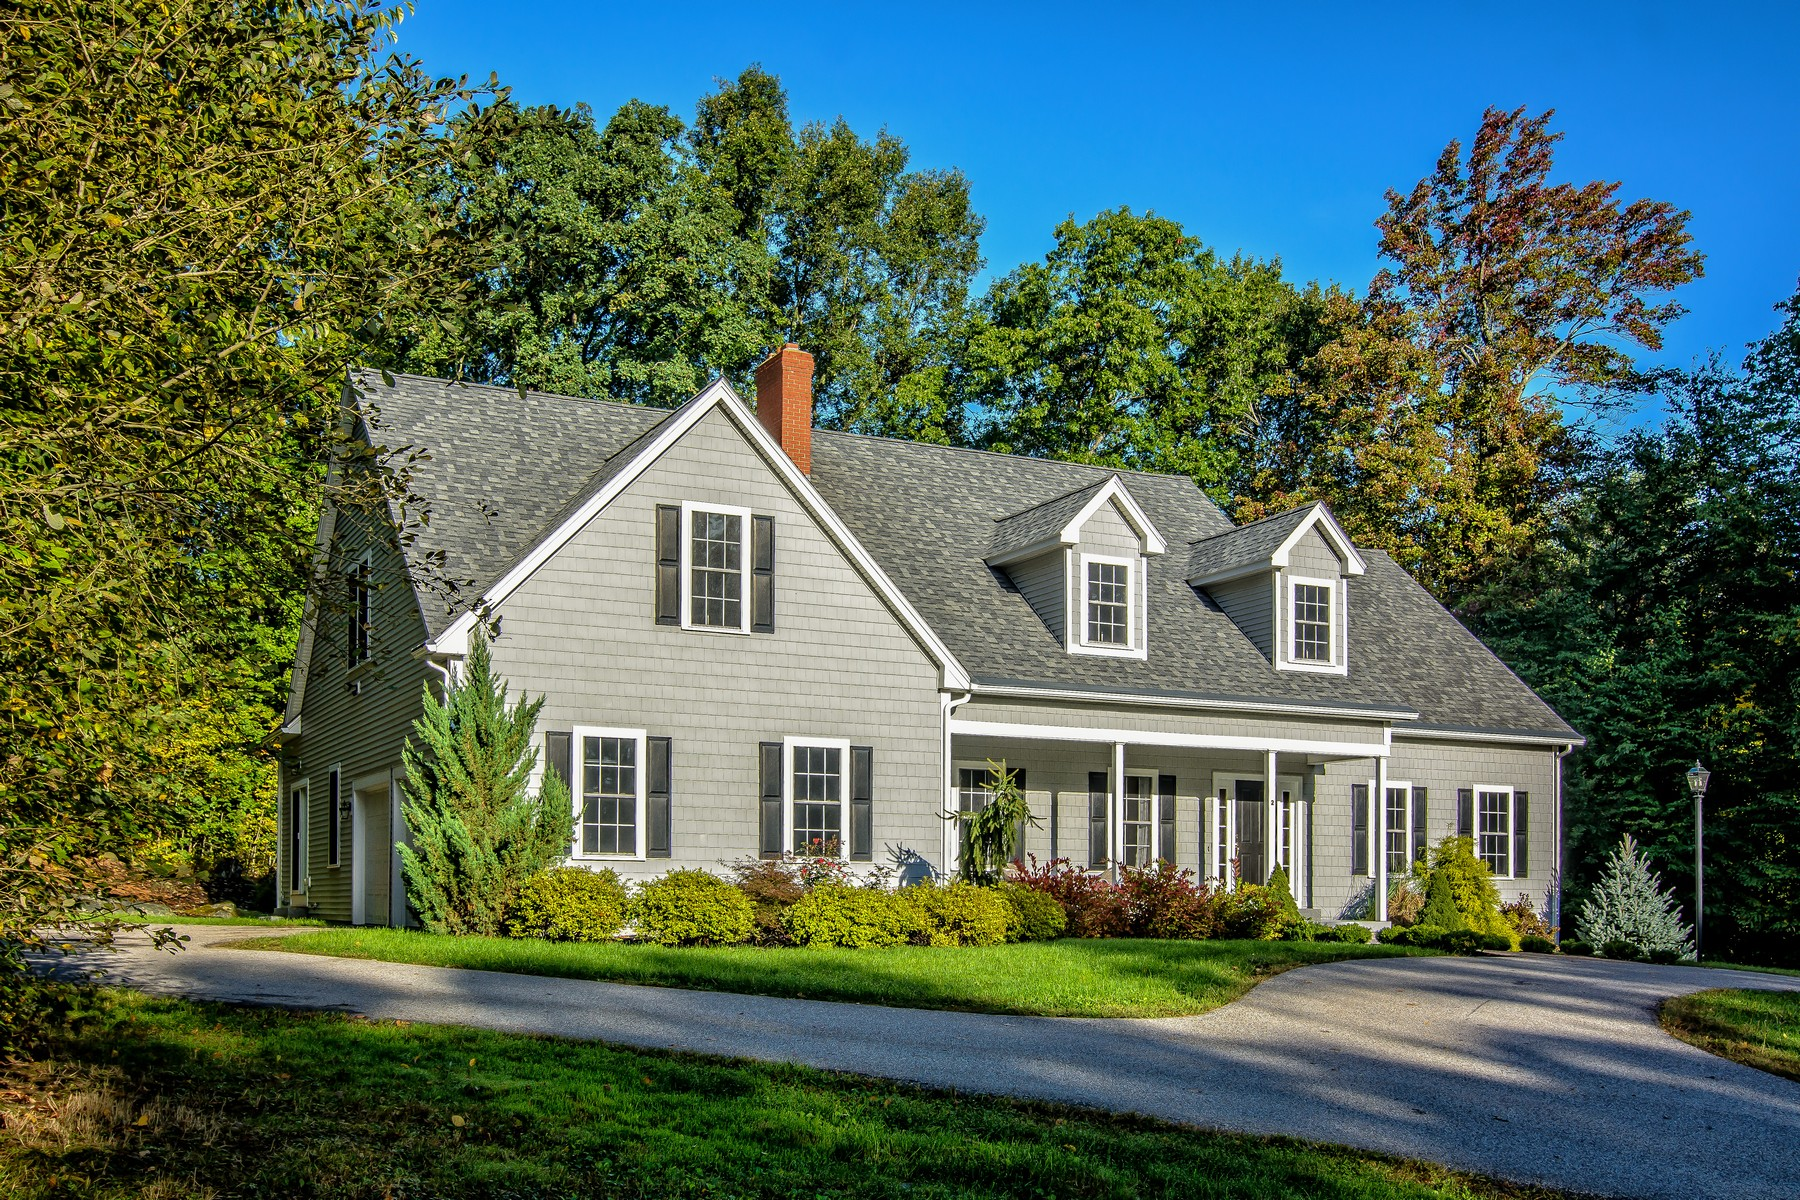 Single Family Home for Sale at Serene and Private Custom-Built Colonial 2 High Street Millbury, Massachusetts 01527 United States